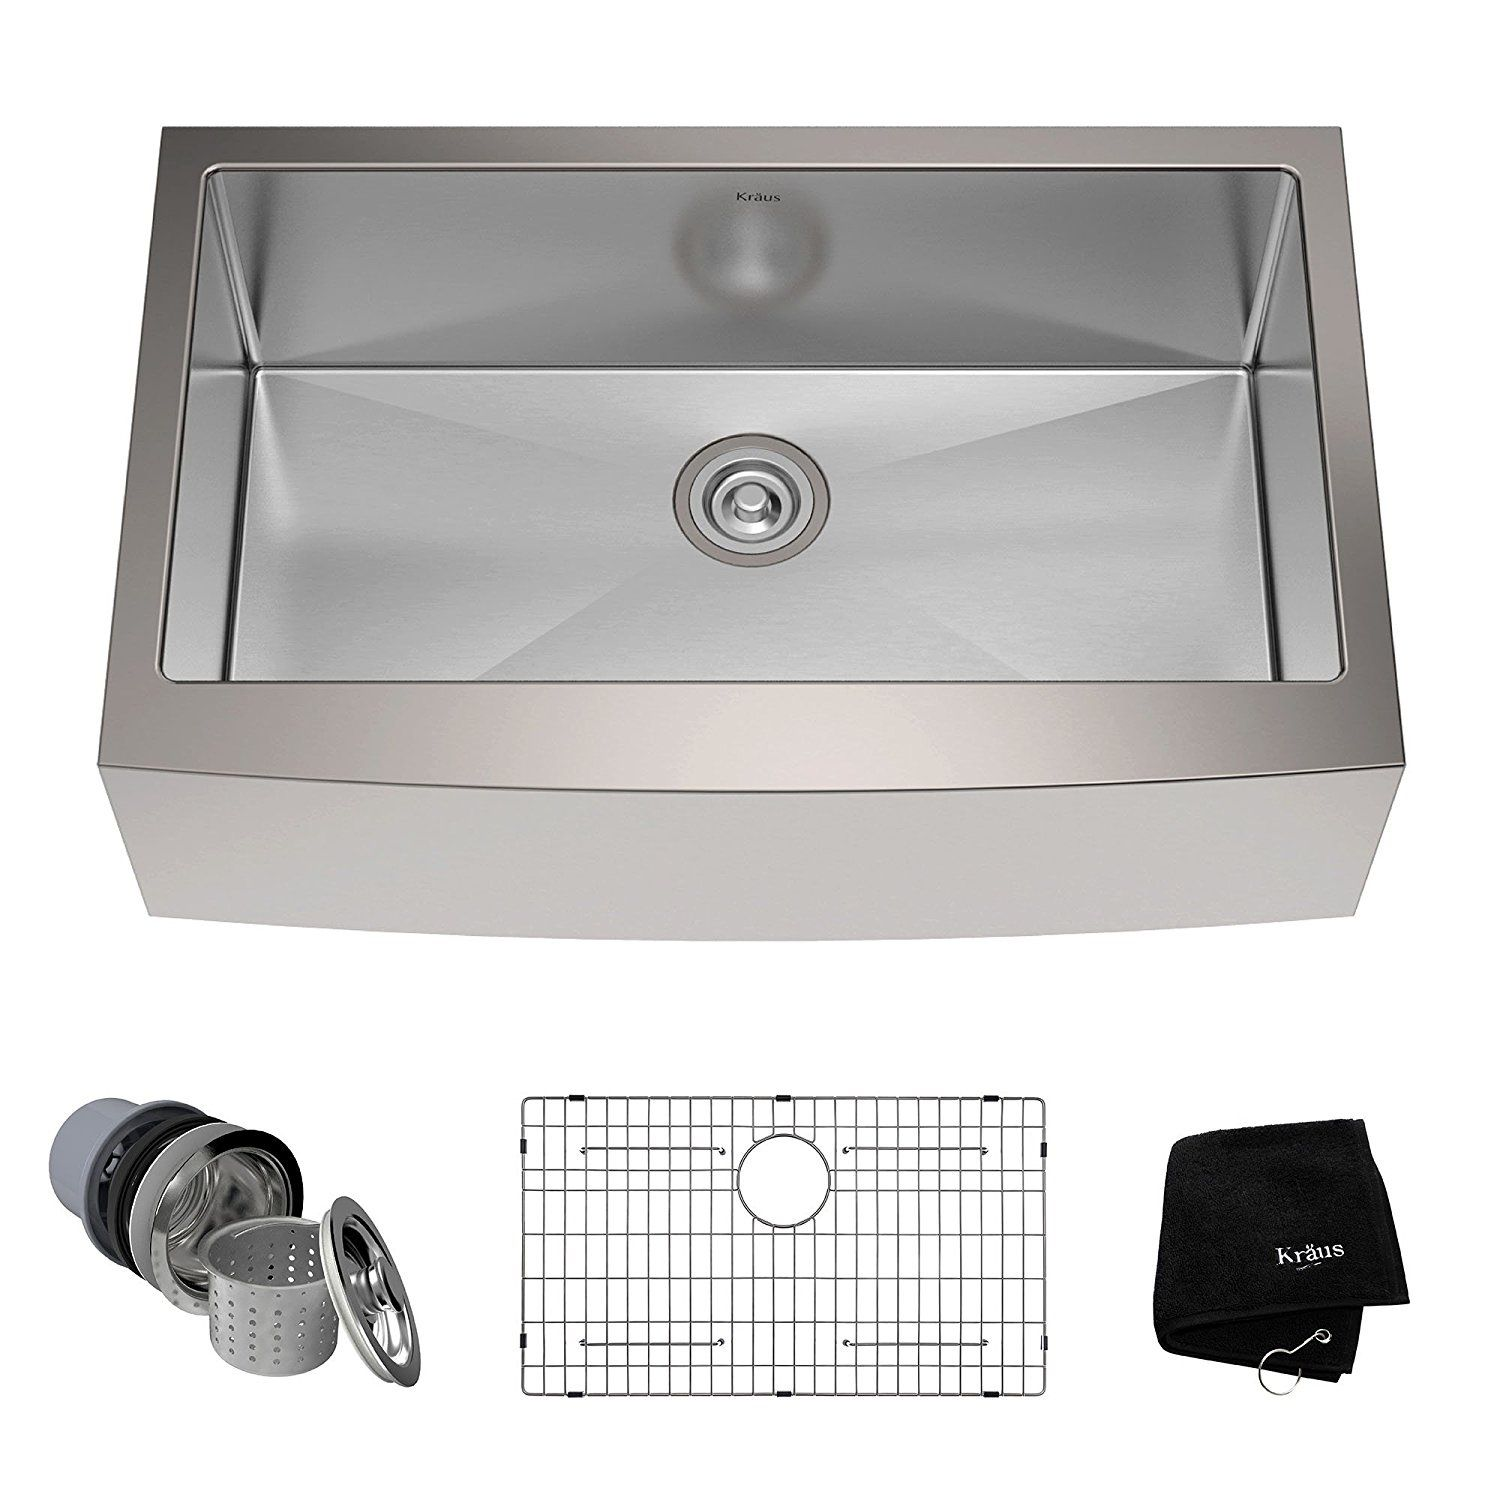 Stainless Steel Farmhouse Sinks Apron Front Sinks Stainless Steel Farmhouse Sink Stainless Steel Kitchen Sink Single Basin Kitchen Sink